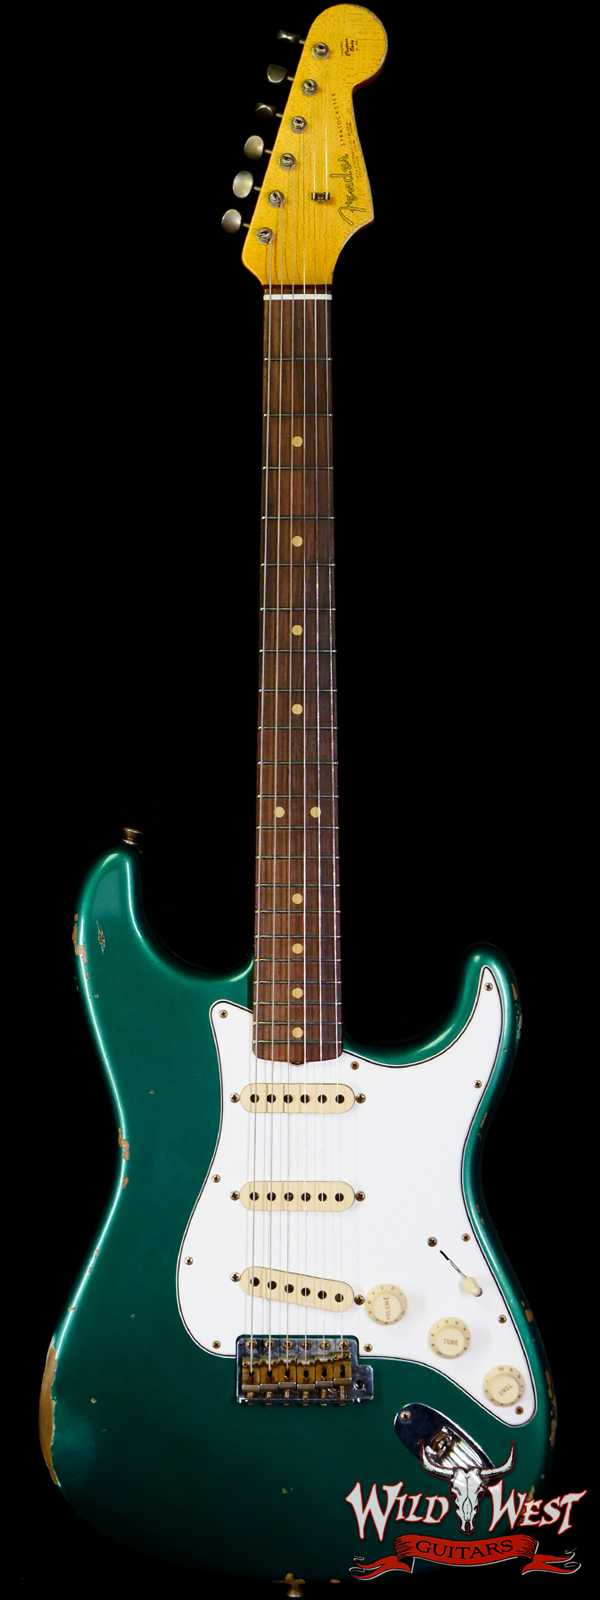 Fender Custom Shop 1963 Stratocaster Relic AAA Rosewood Board with Quartersawn Maple Neck British Racing Green